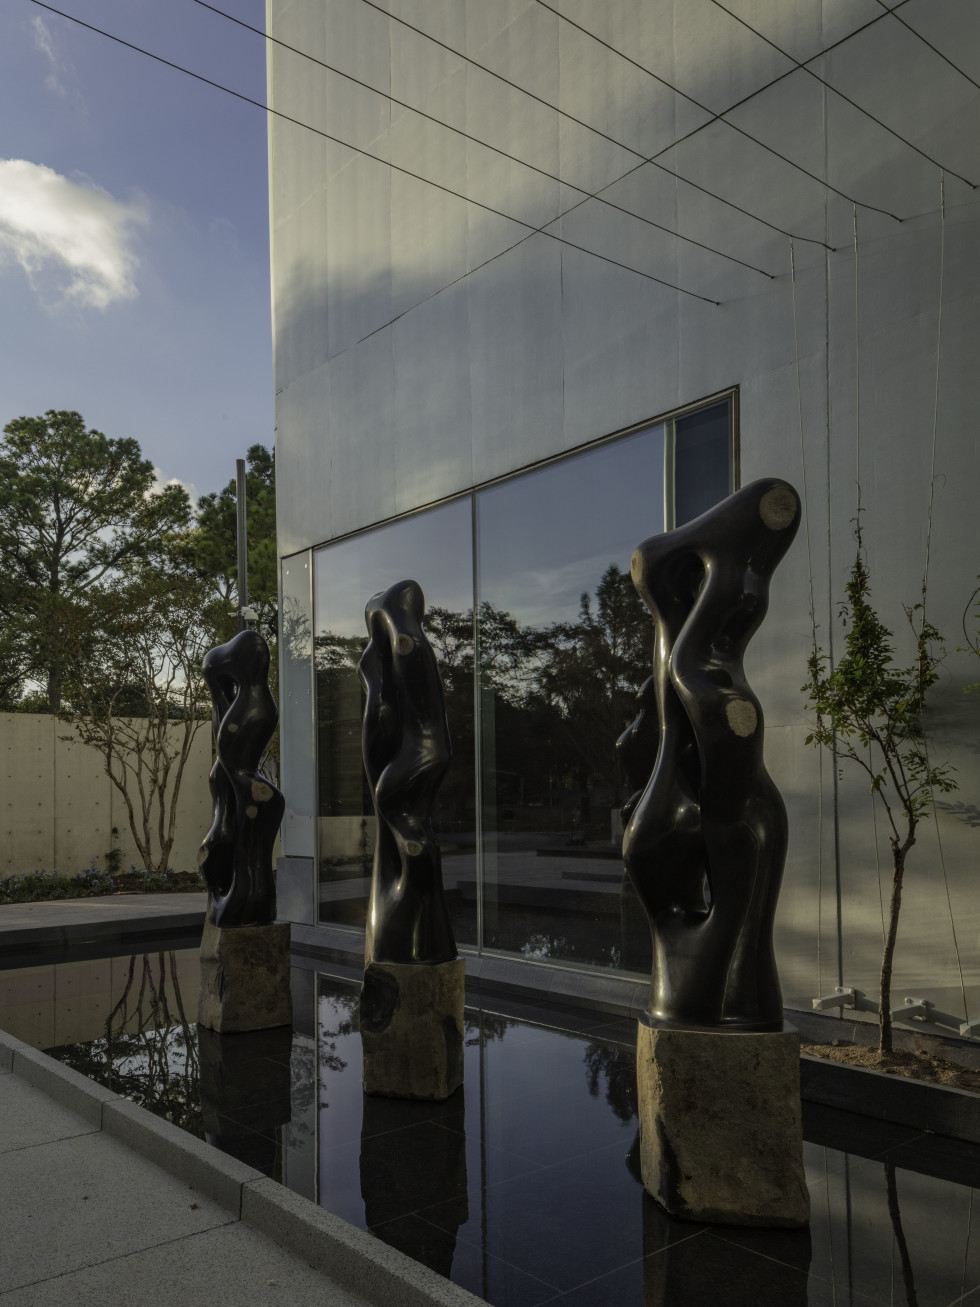 MFAH Nancy and Rich Kinder Building Byung Hoon Choi's Scholar's Way